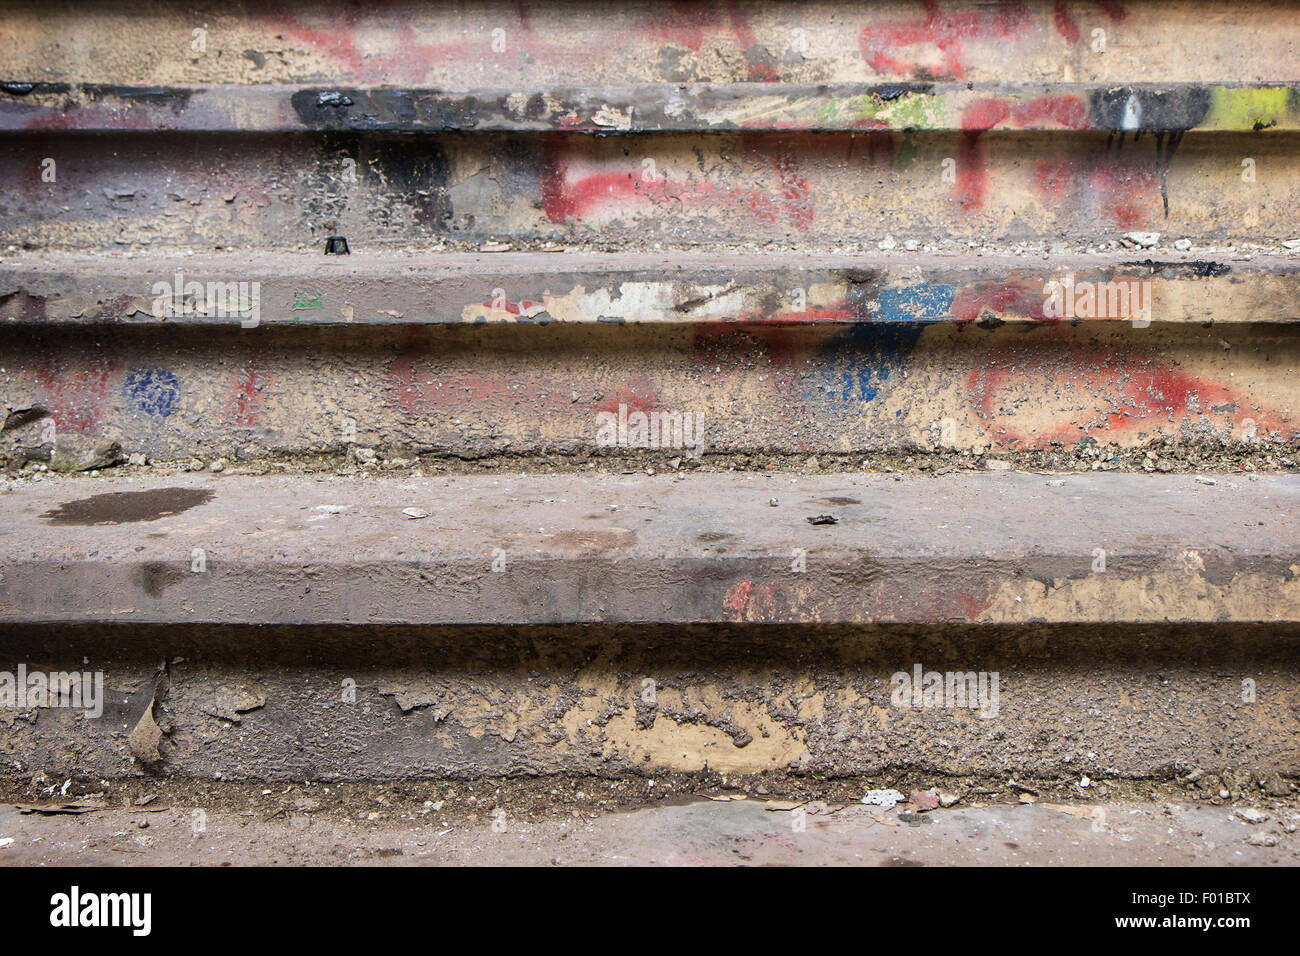 Close-up of a filthy and dirty stairway - Stock Image